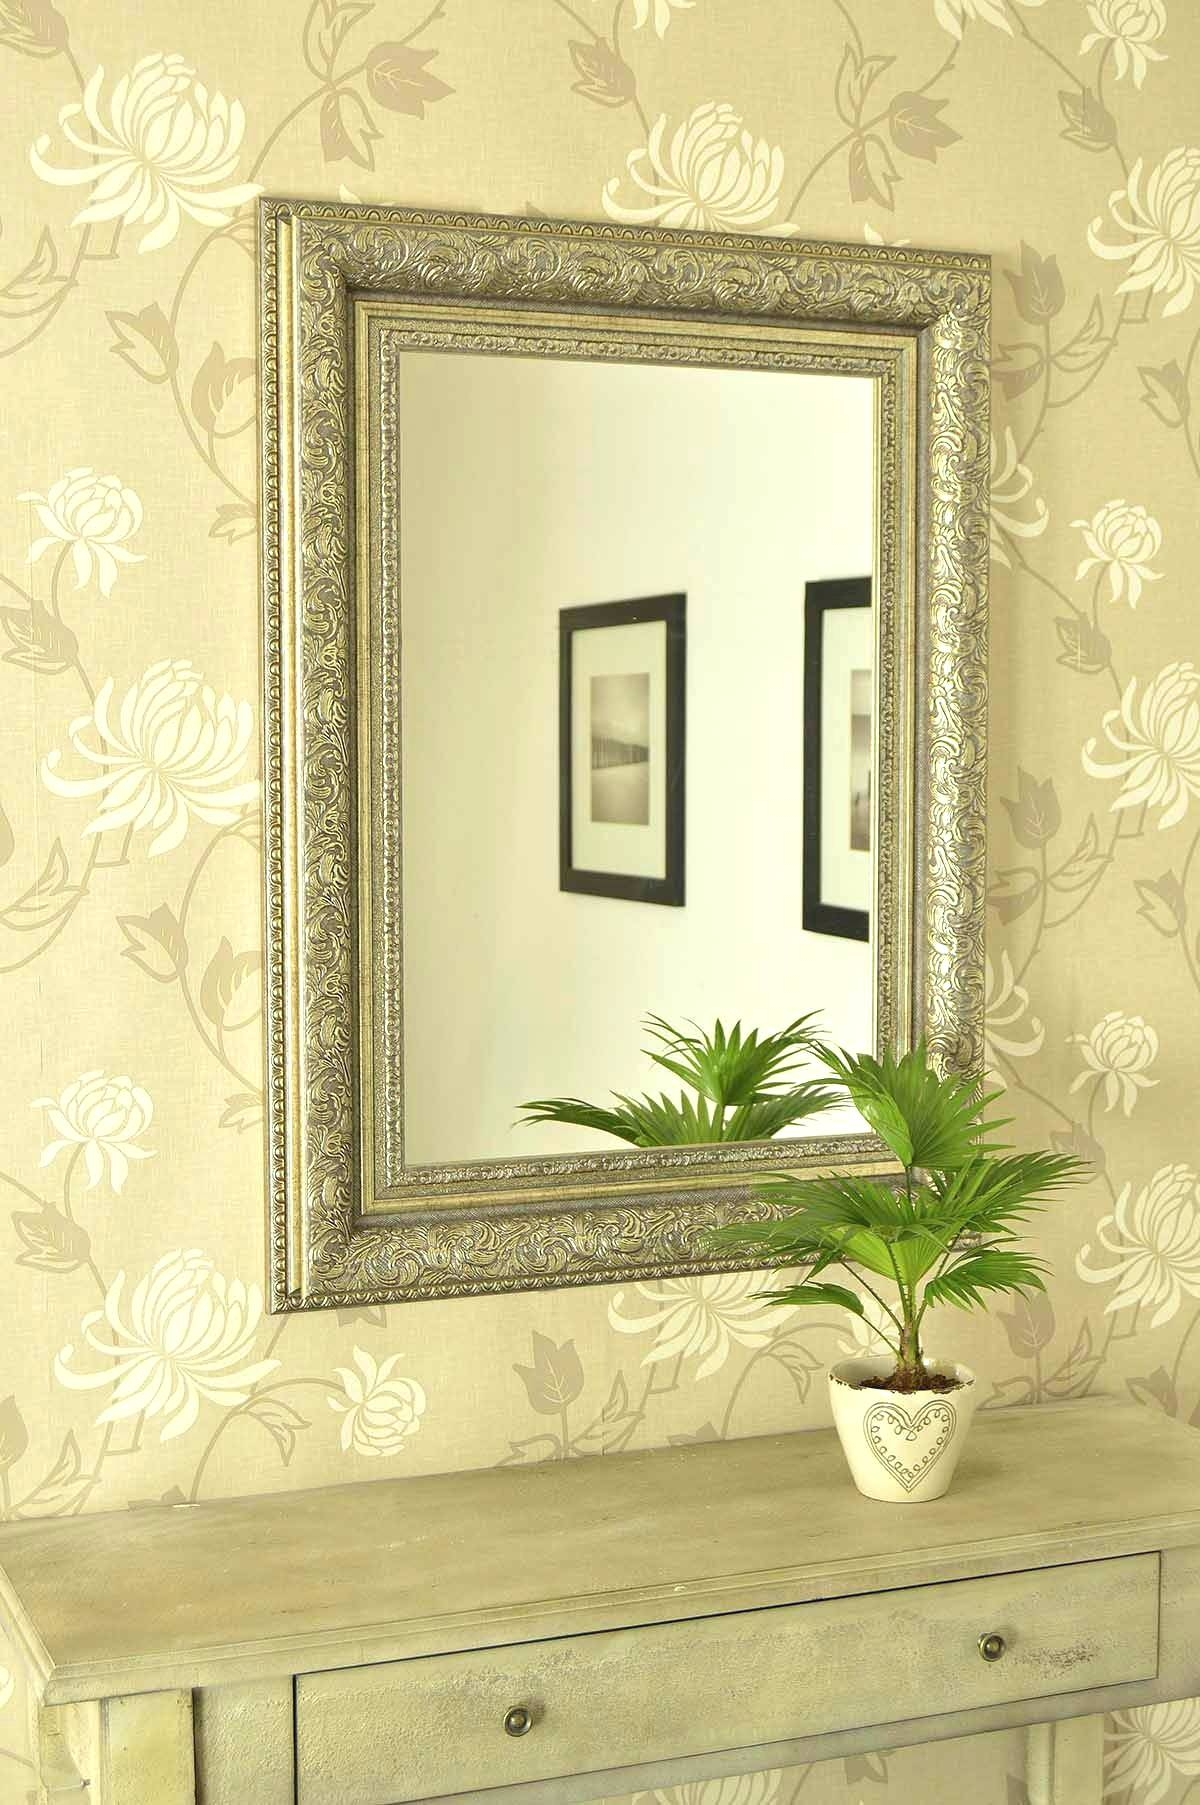 20 Best Ideas of Mirrors Modern Wall Art